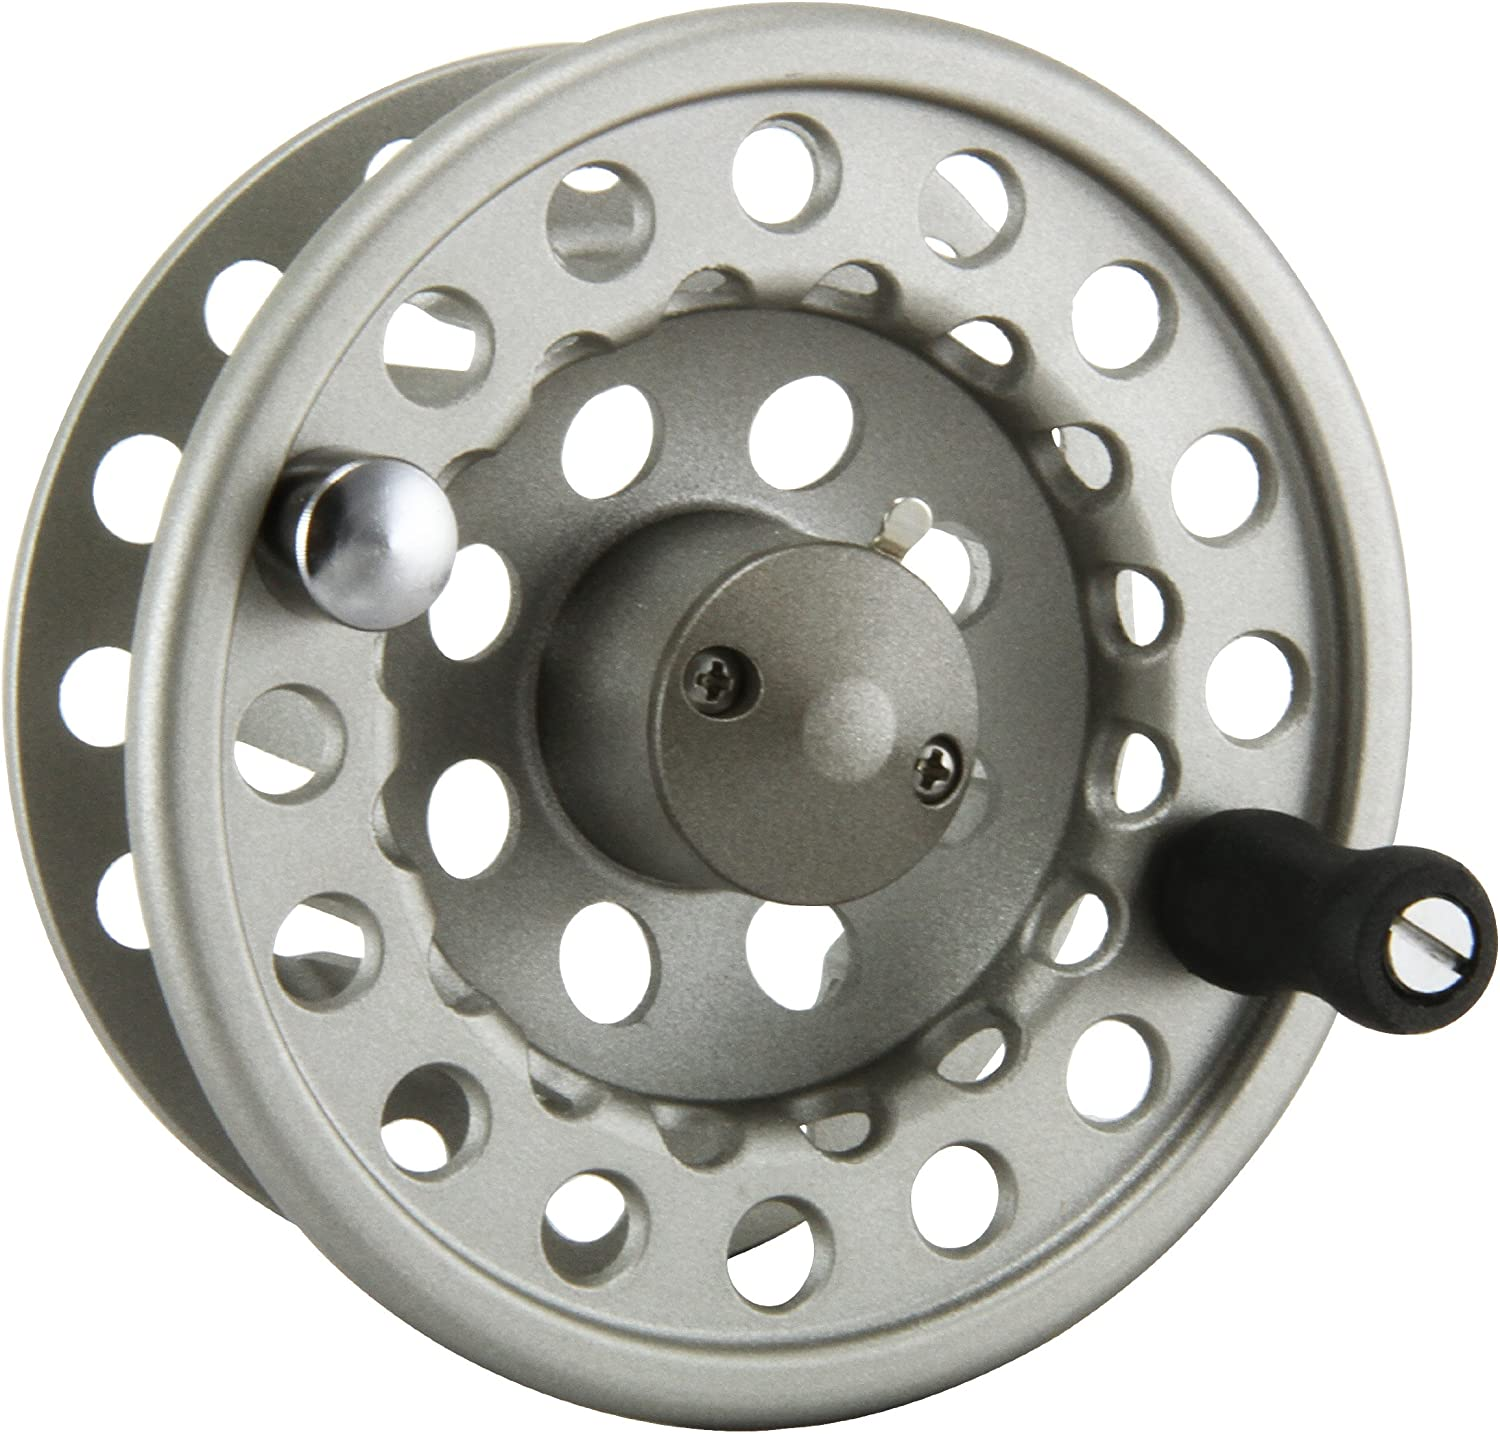 Best Fly Fishing Reel : Okuma SLV Diecast Aluminum Fly Reel